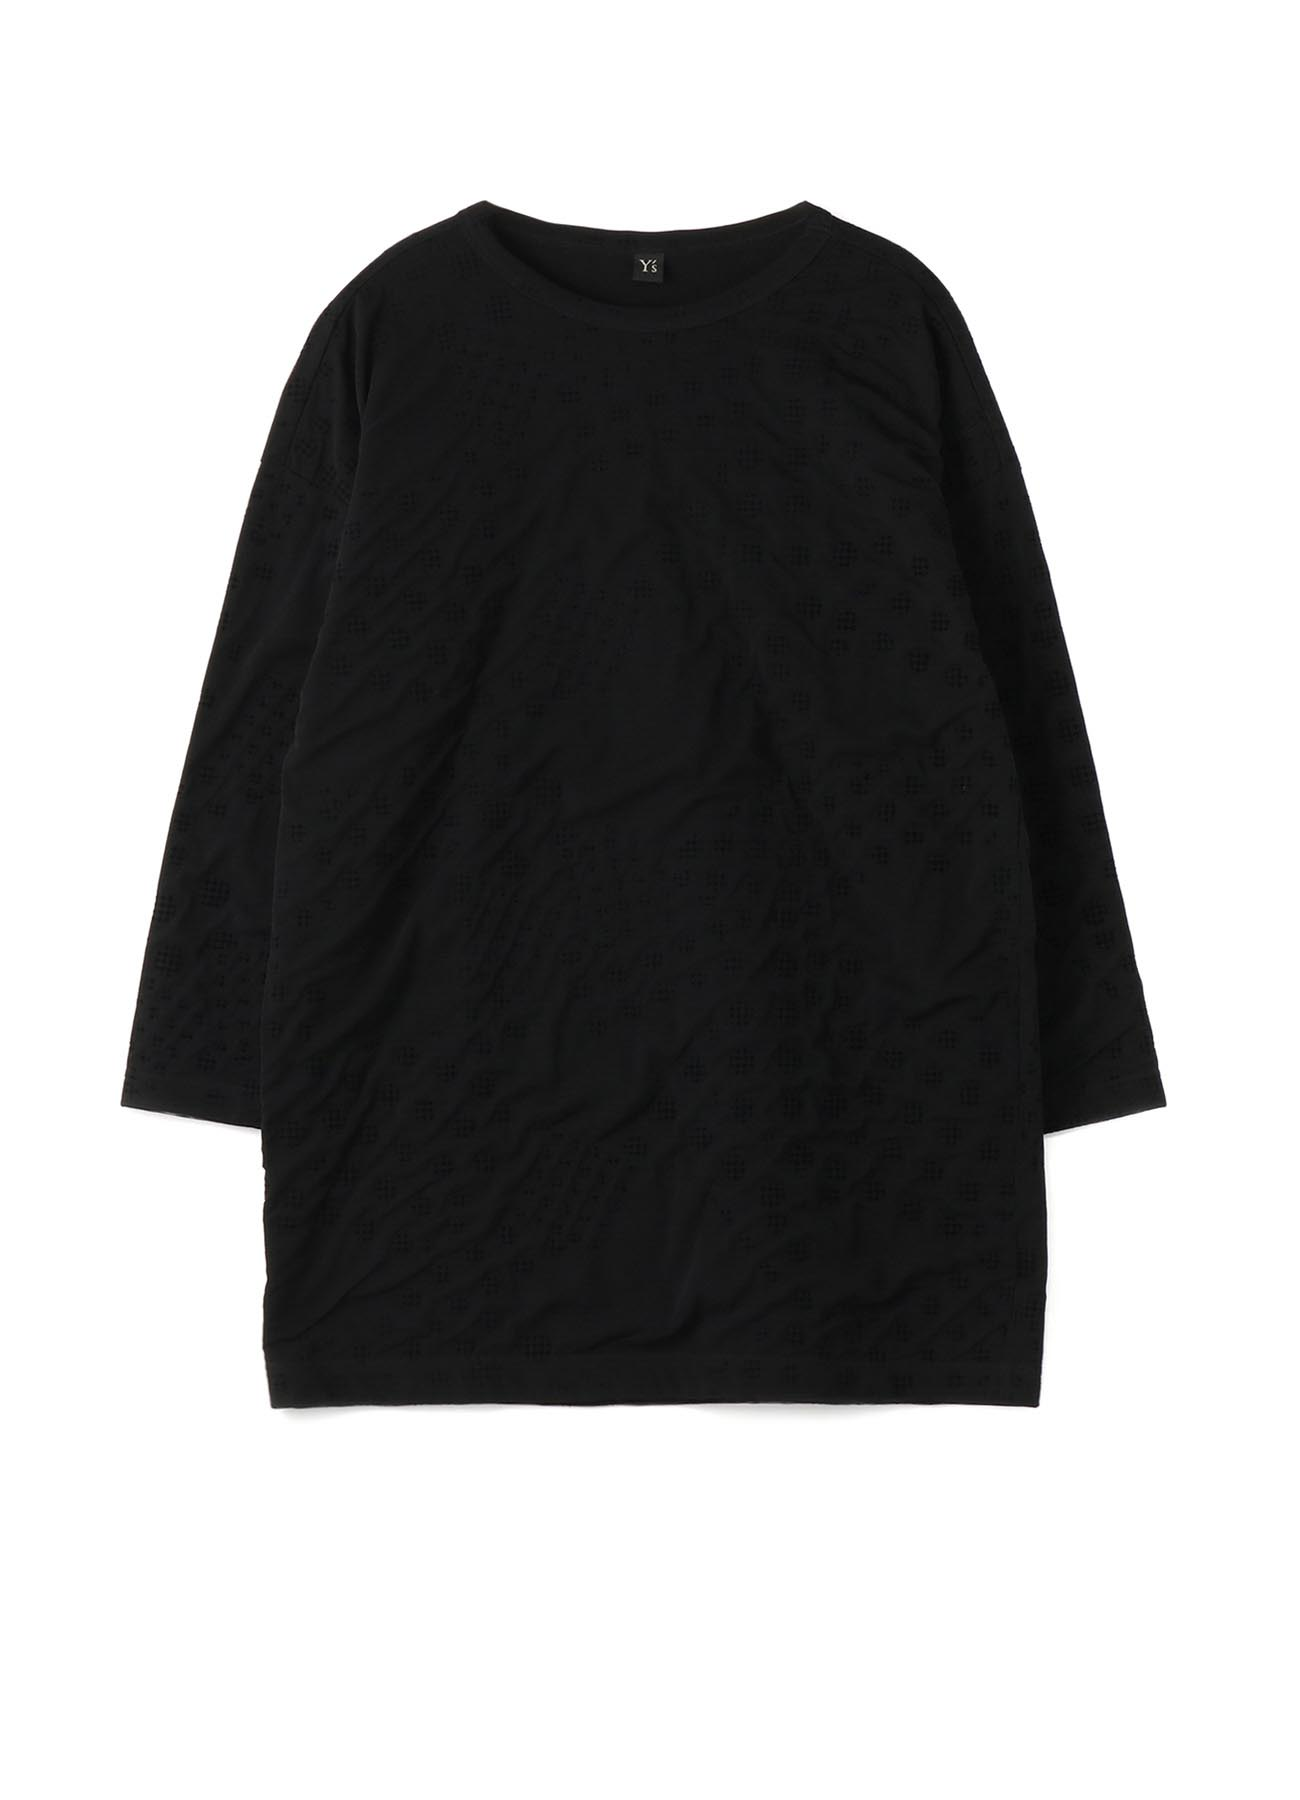 POLYESTER TULLE x COTTON HOUNDSTOOTH FLOCKY BIG T-SHIRT